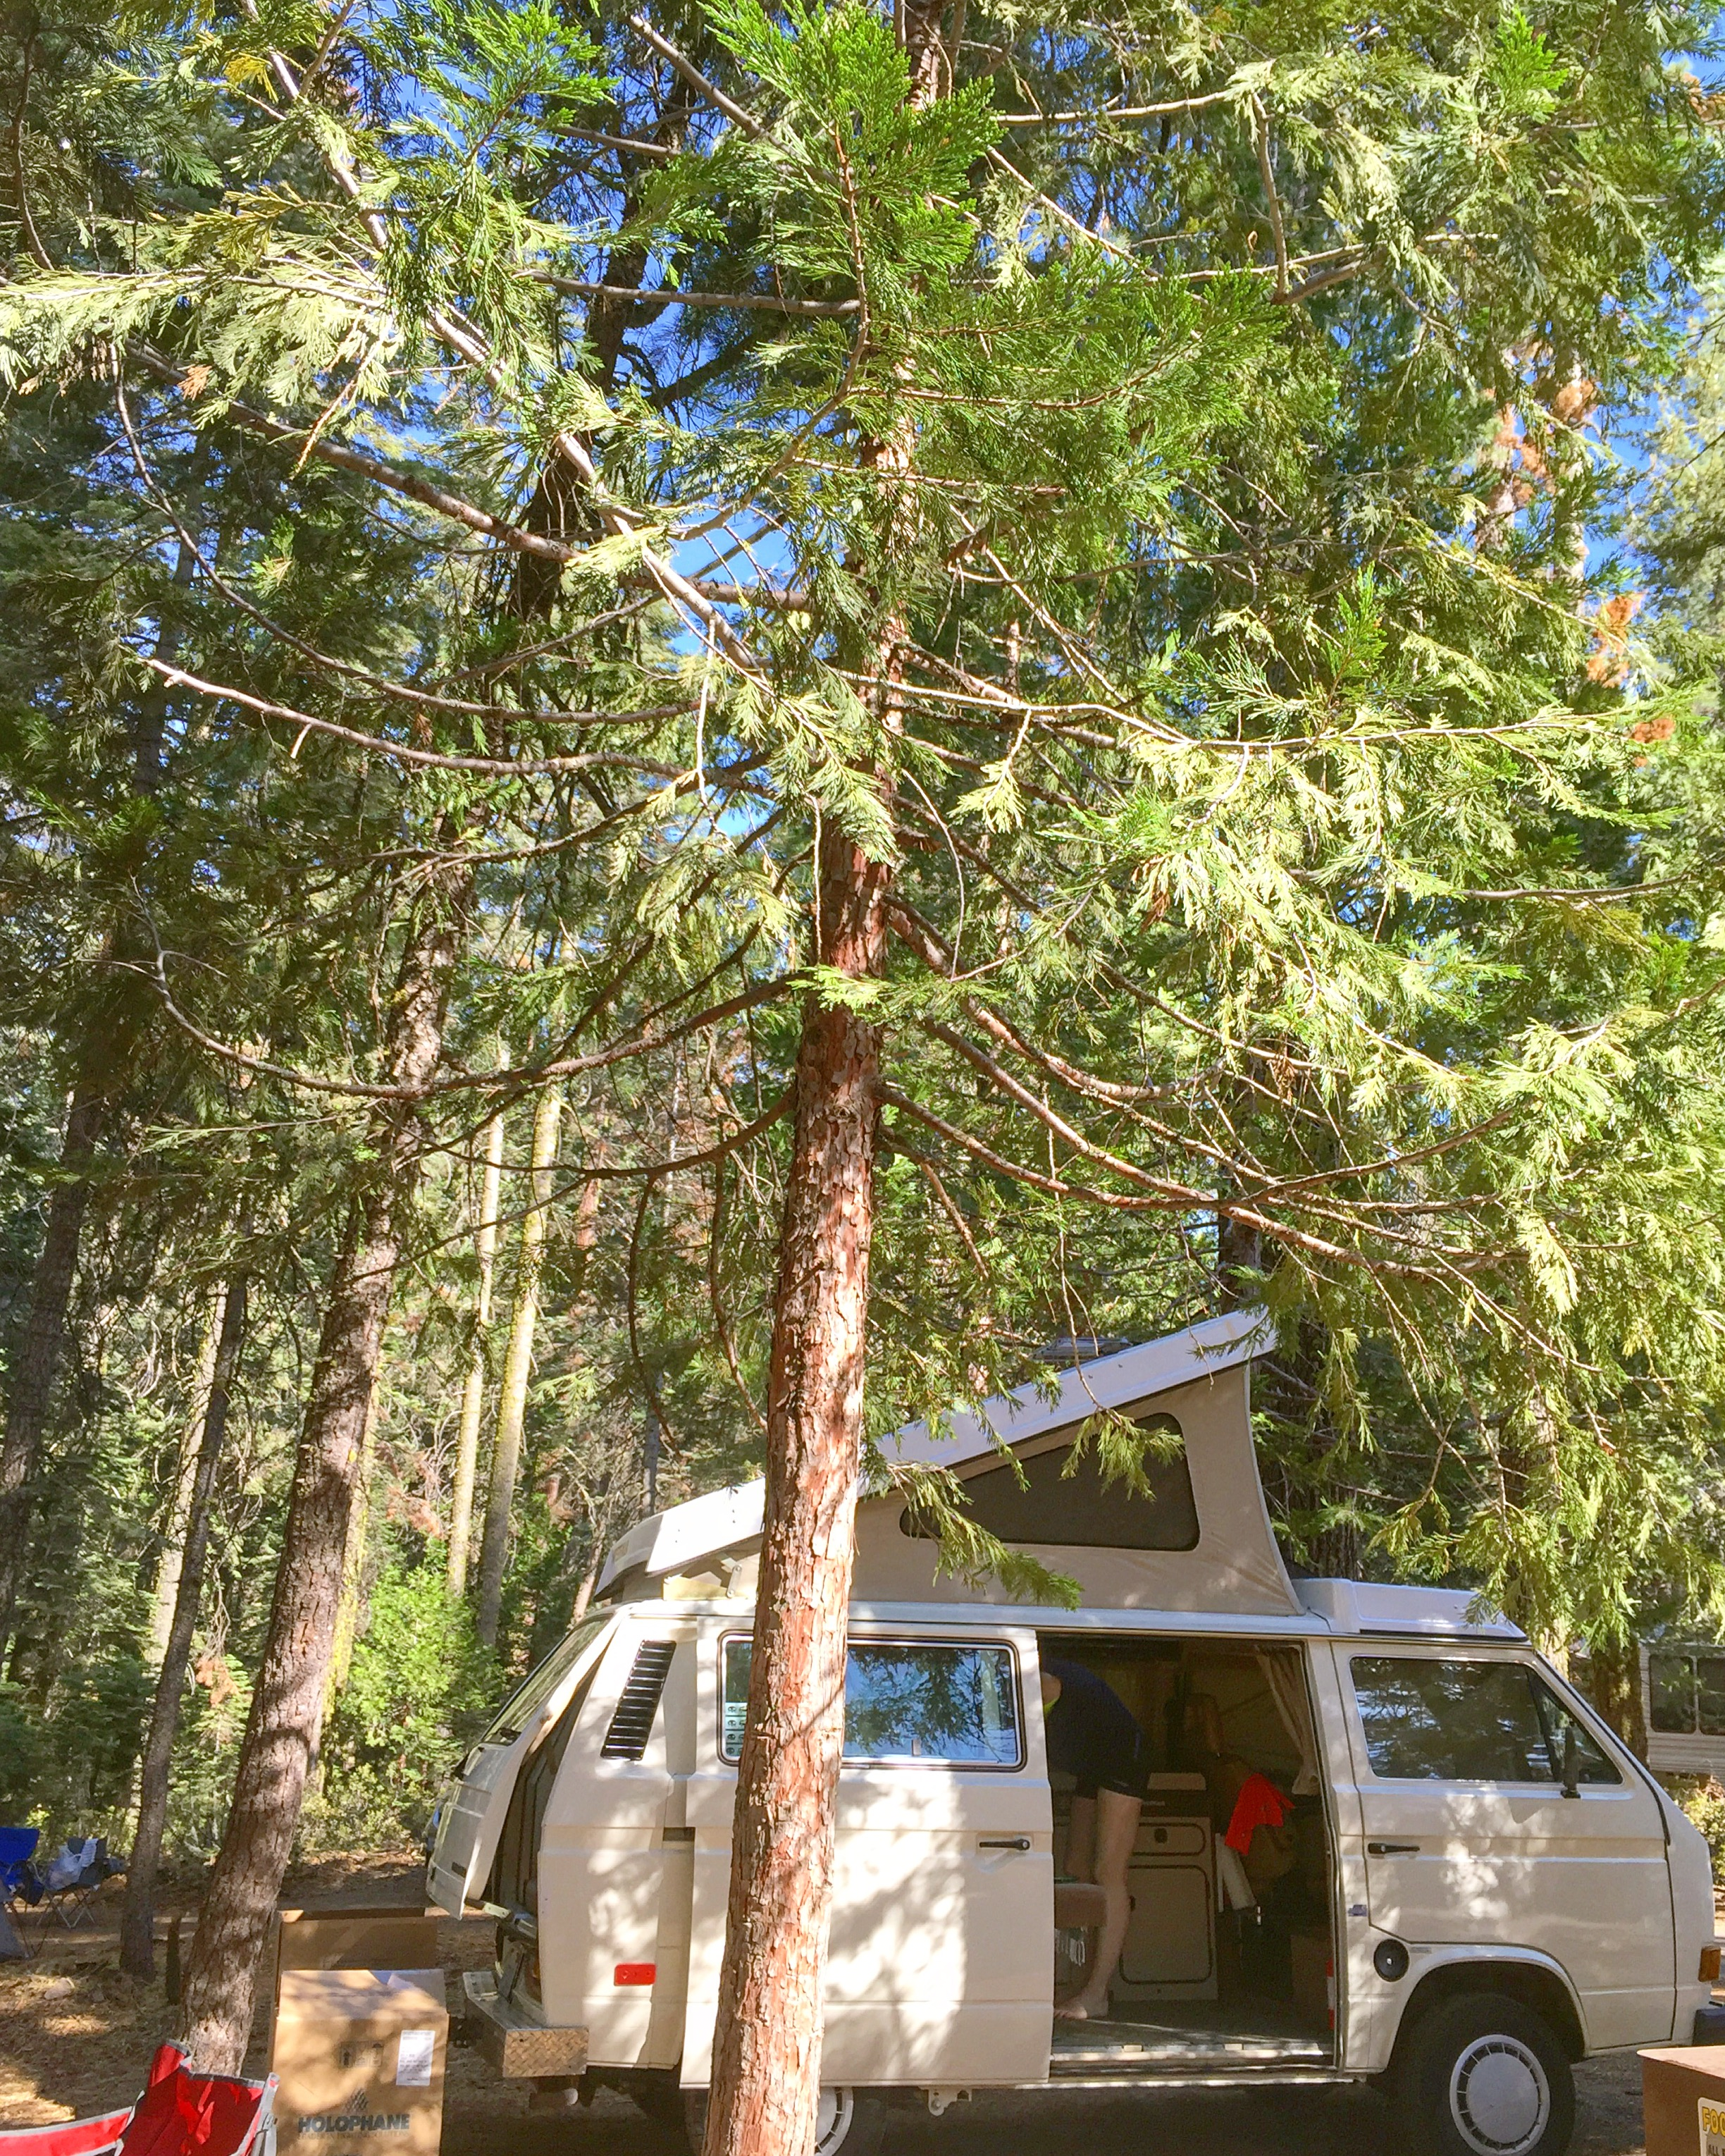 VW Westfalia at Crane Flat - Yosemite